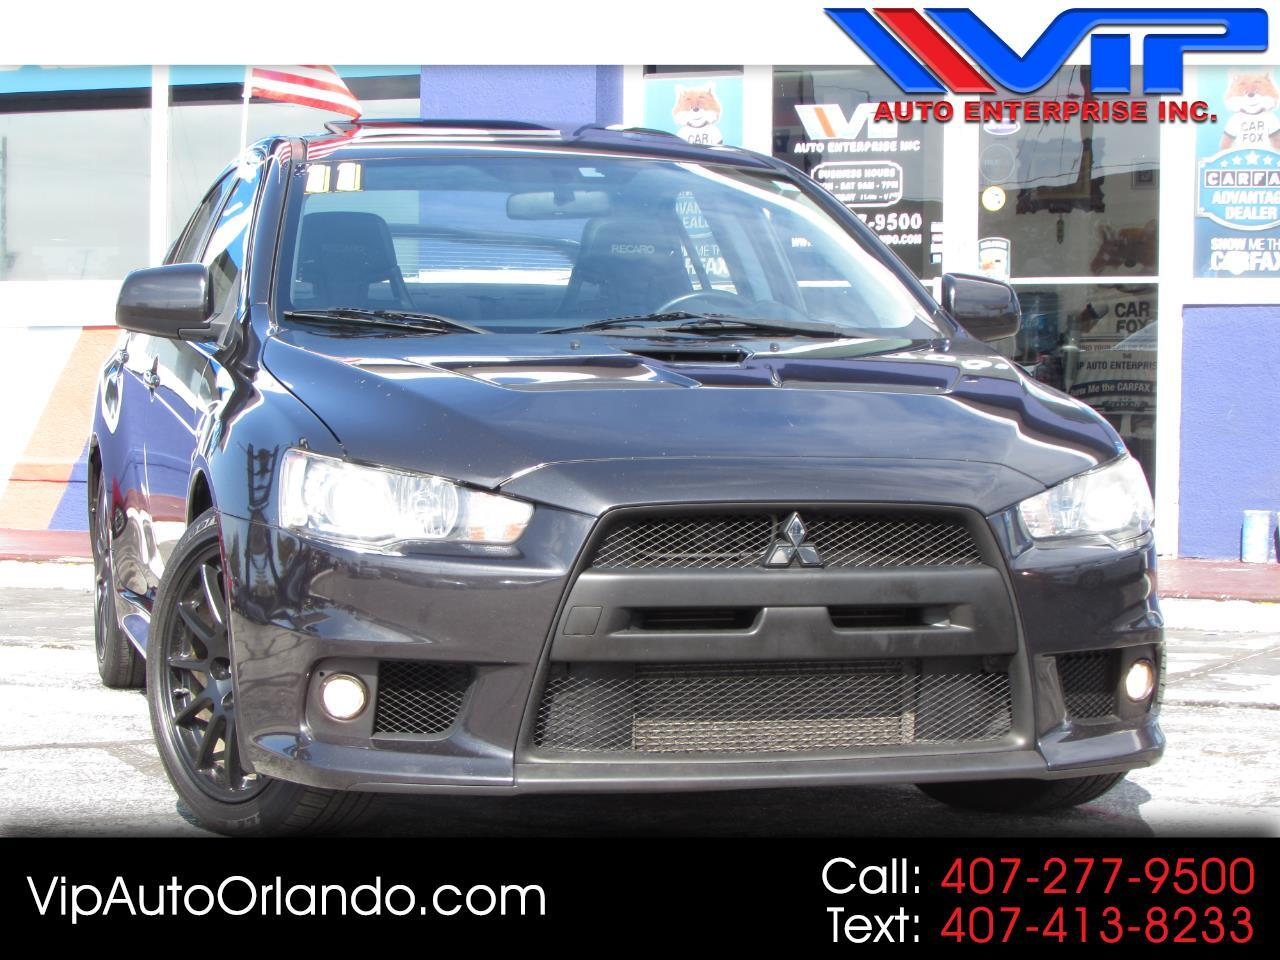 2011 Mitsubishi Lancer 4dr Sdn Man Evolution GSR AWD